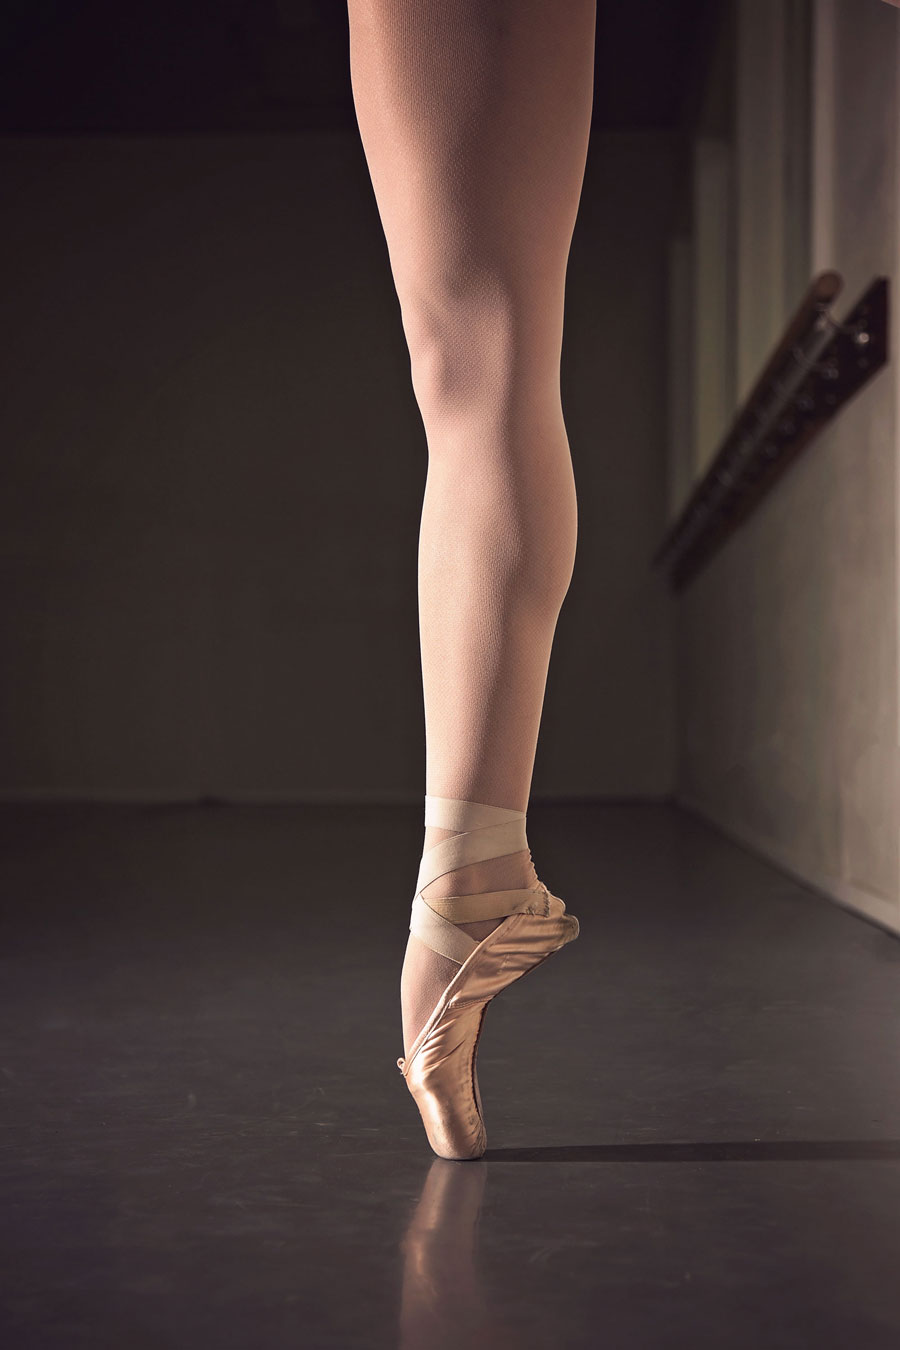 How to Choose Marley Dance Flooring: Find the best marley floors for ballet, tap, jazz, contemporary and more.